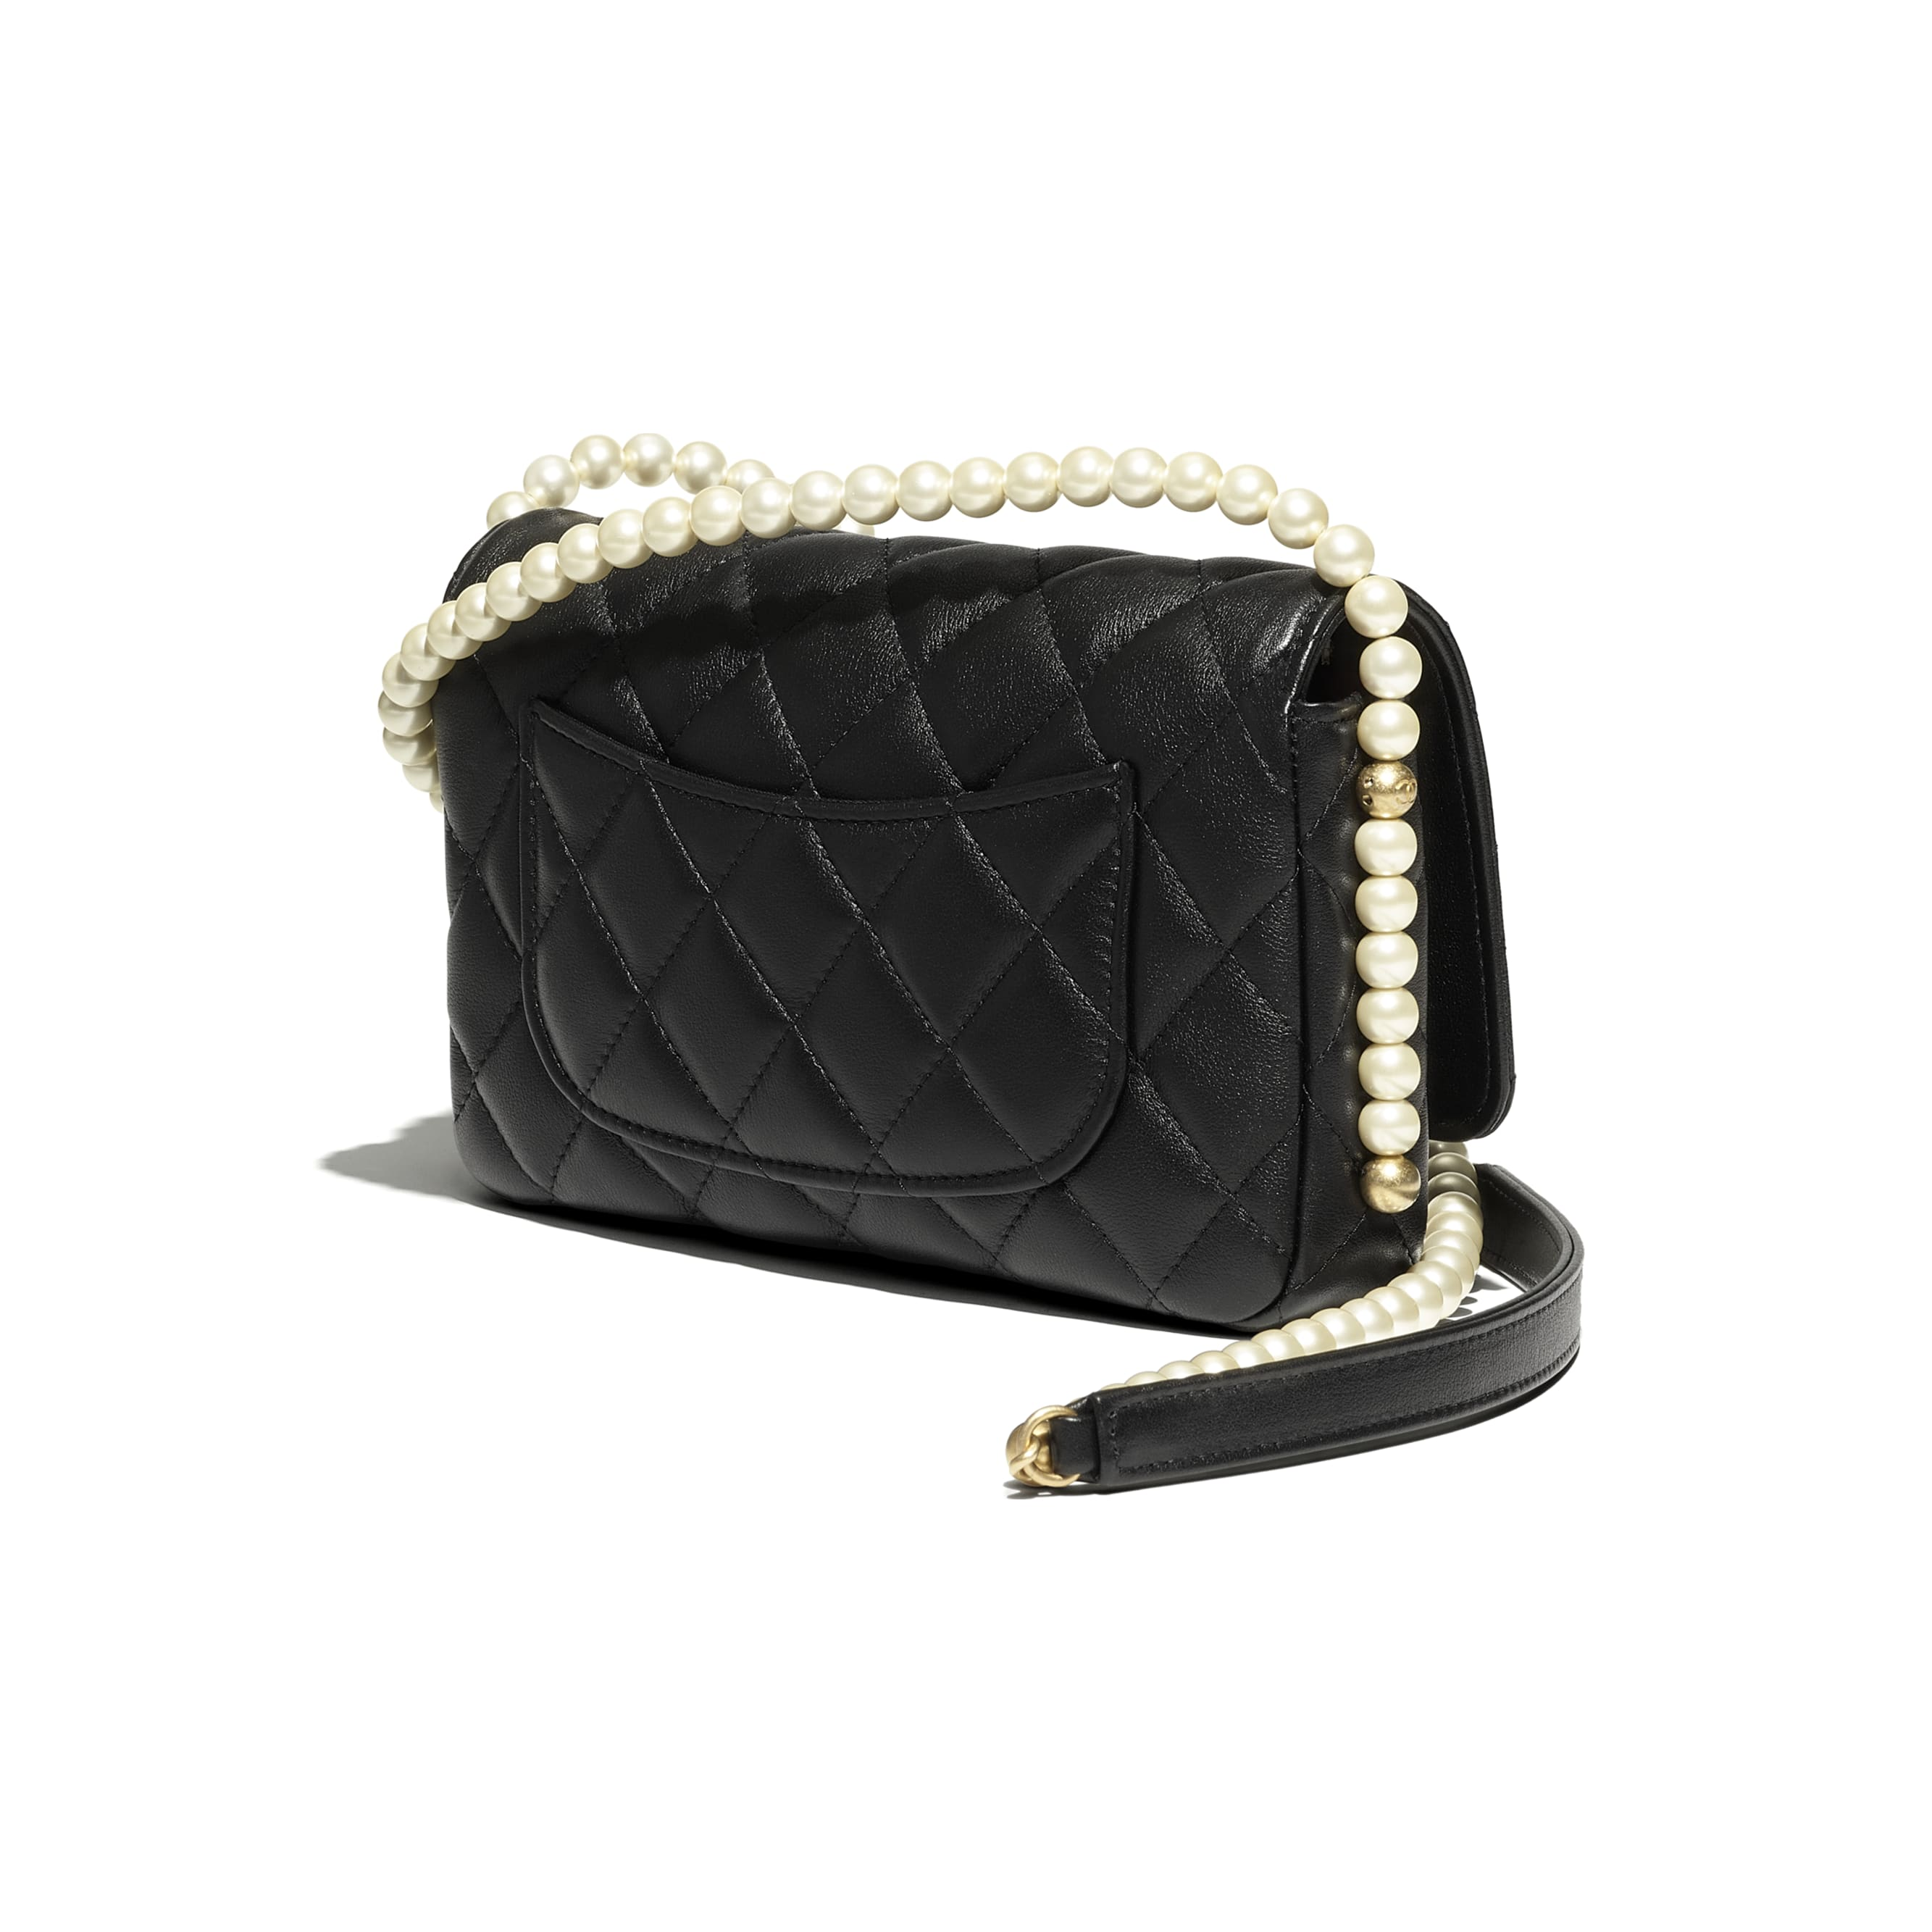 Wallet On Chain - Black - Calfskin, Imitation Pearls & Gold-Tone Metal - CHANEL - Extra view - see standard sized version